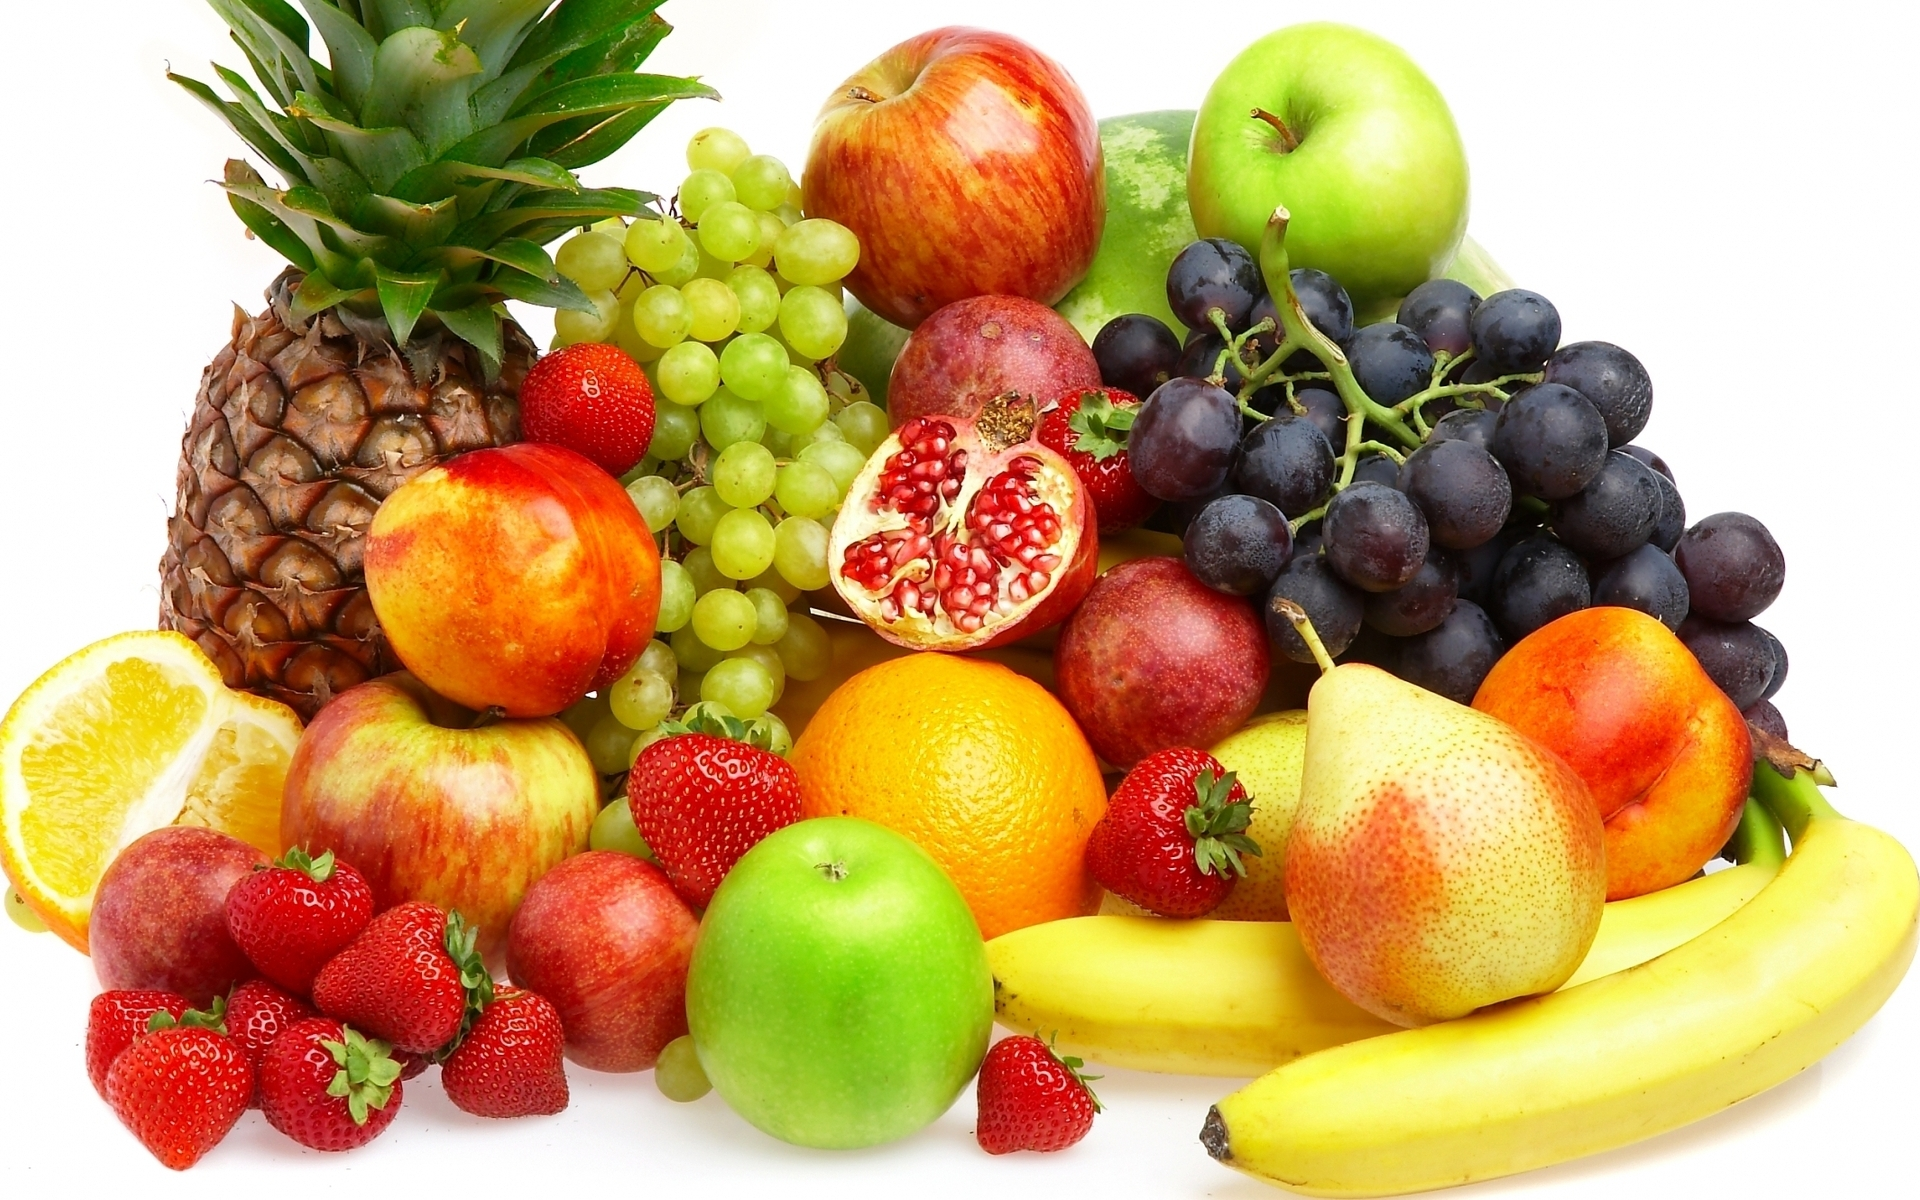 Assorted fruits wallpapers and images   wallpapers pictures photos 1920x1200